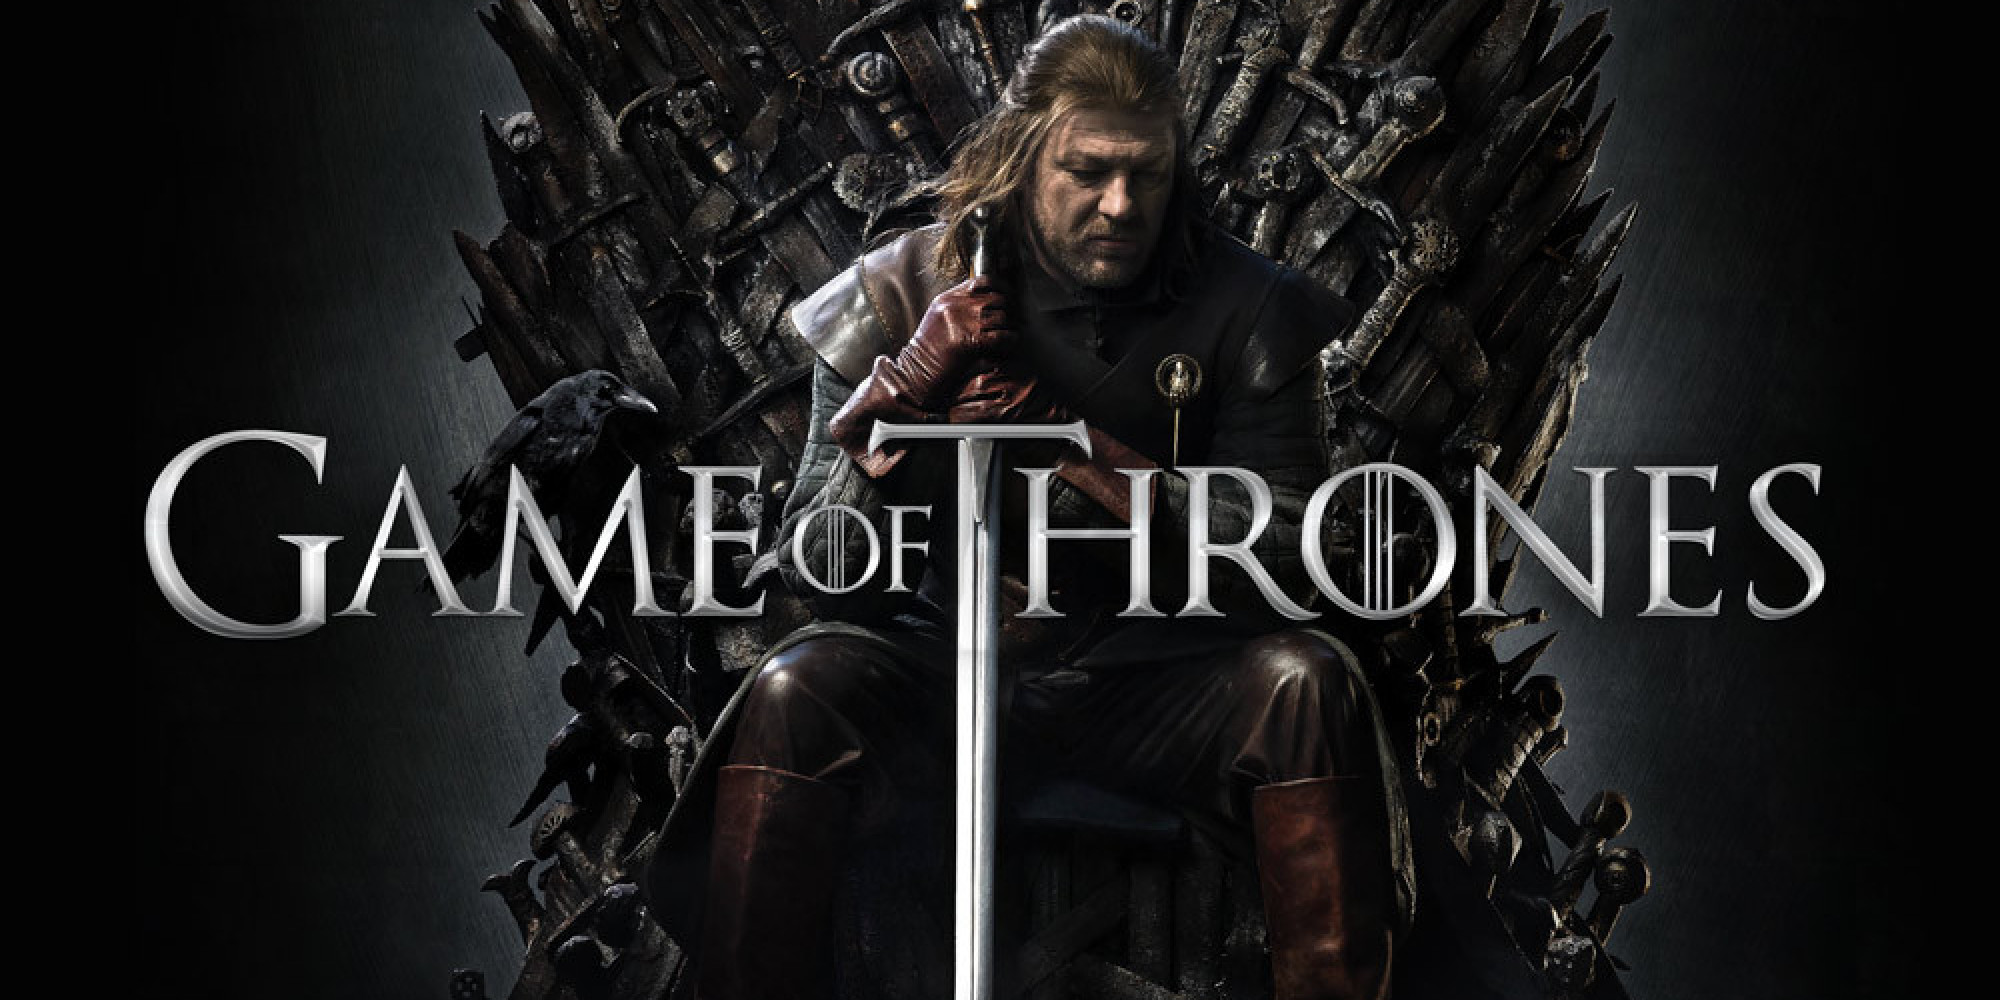 BioWorld partners with HBO for Game of Thrones